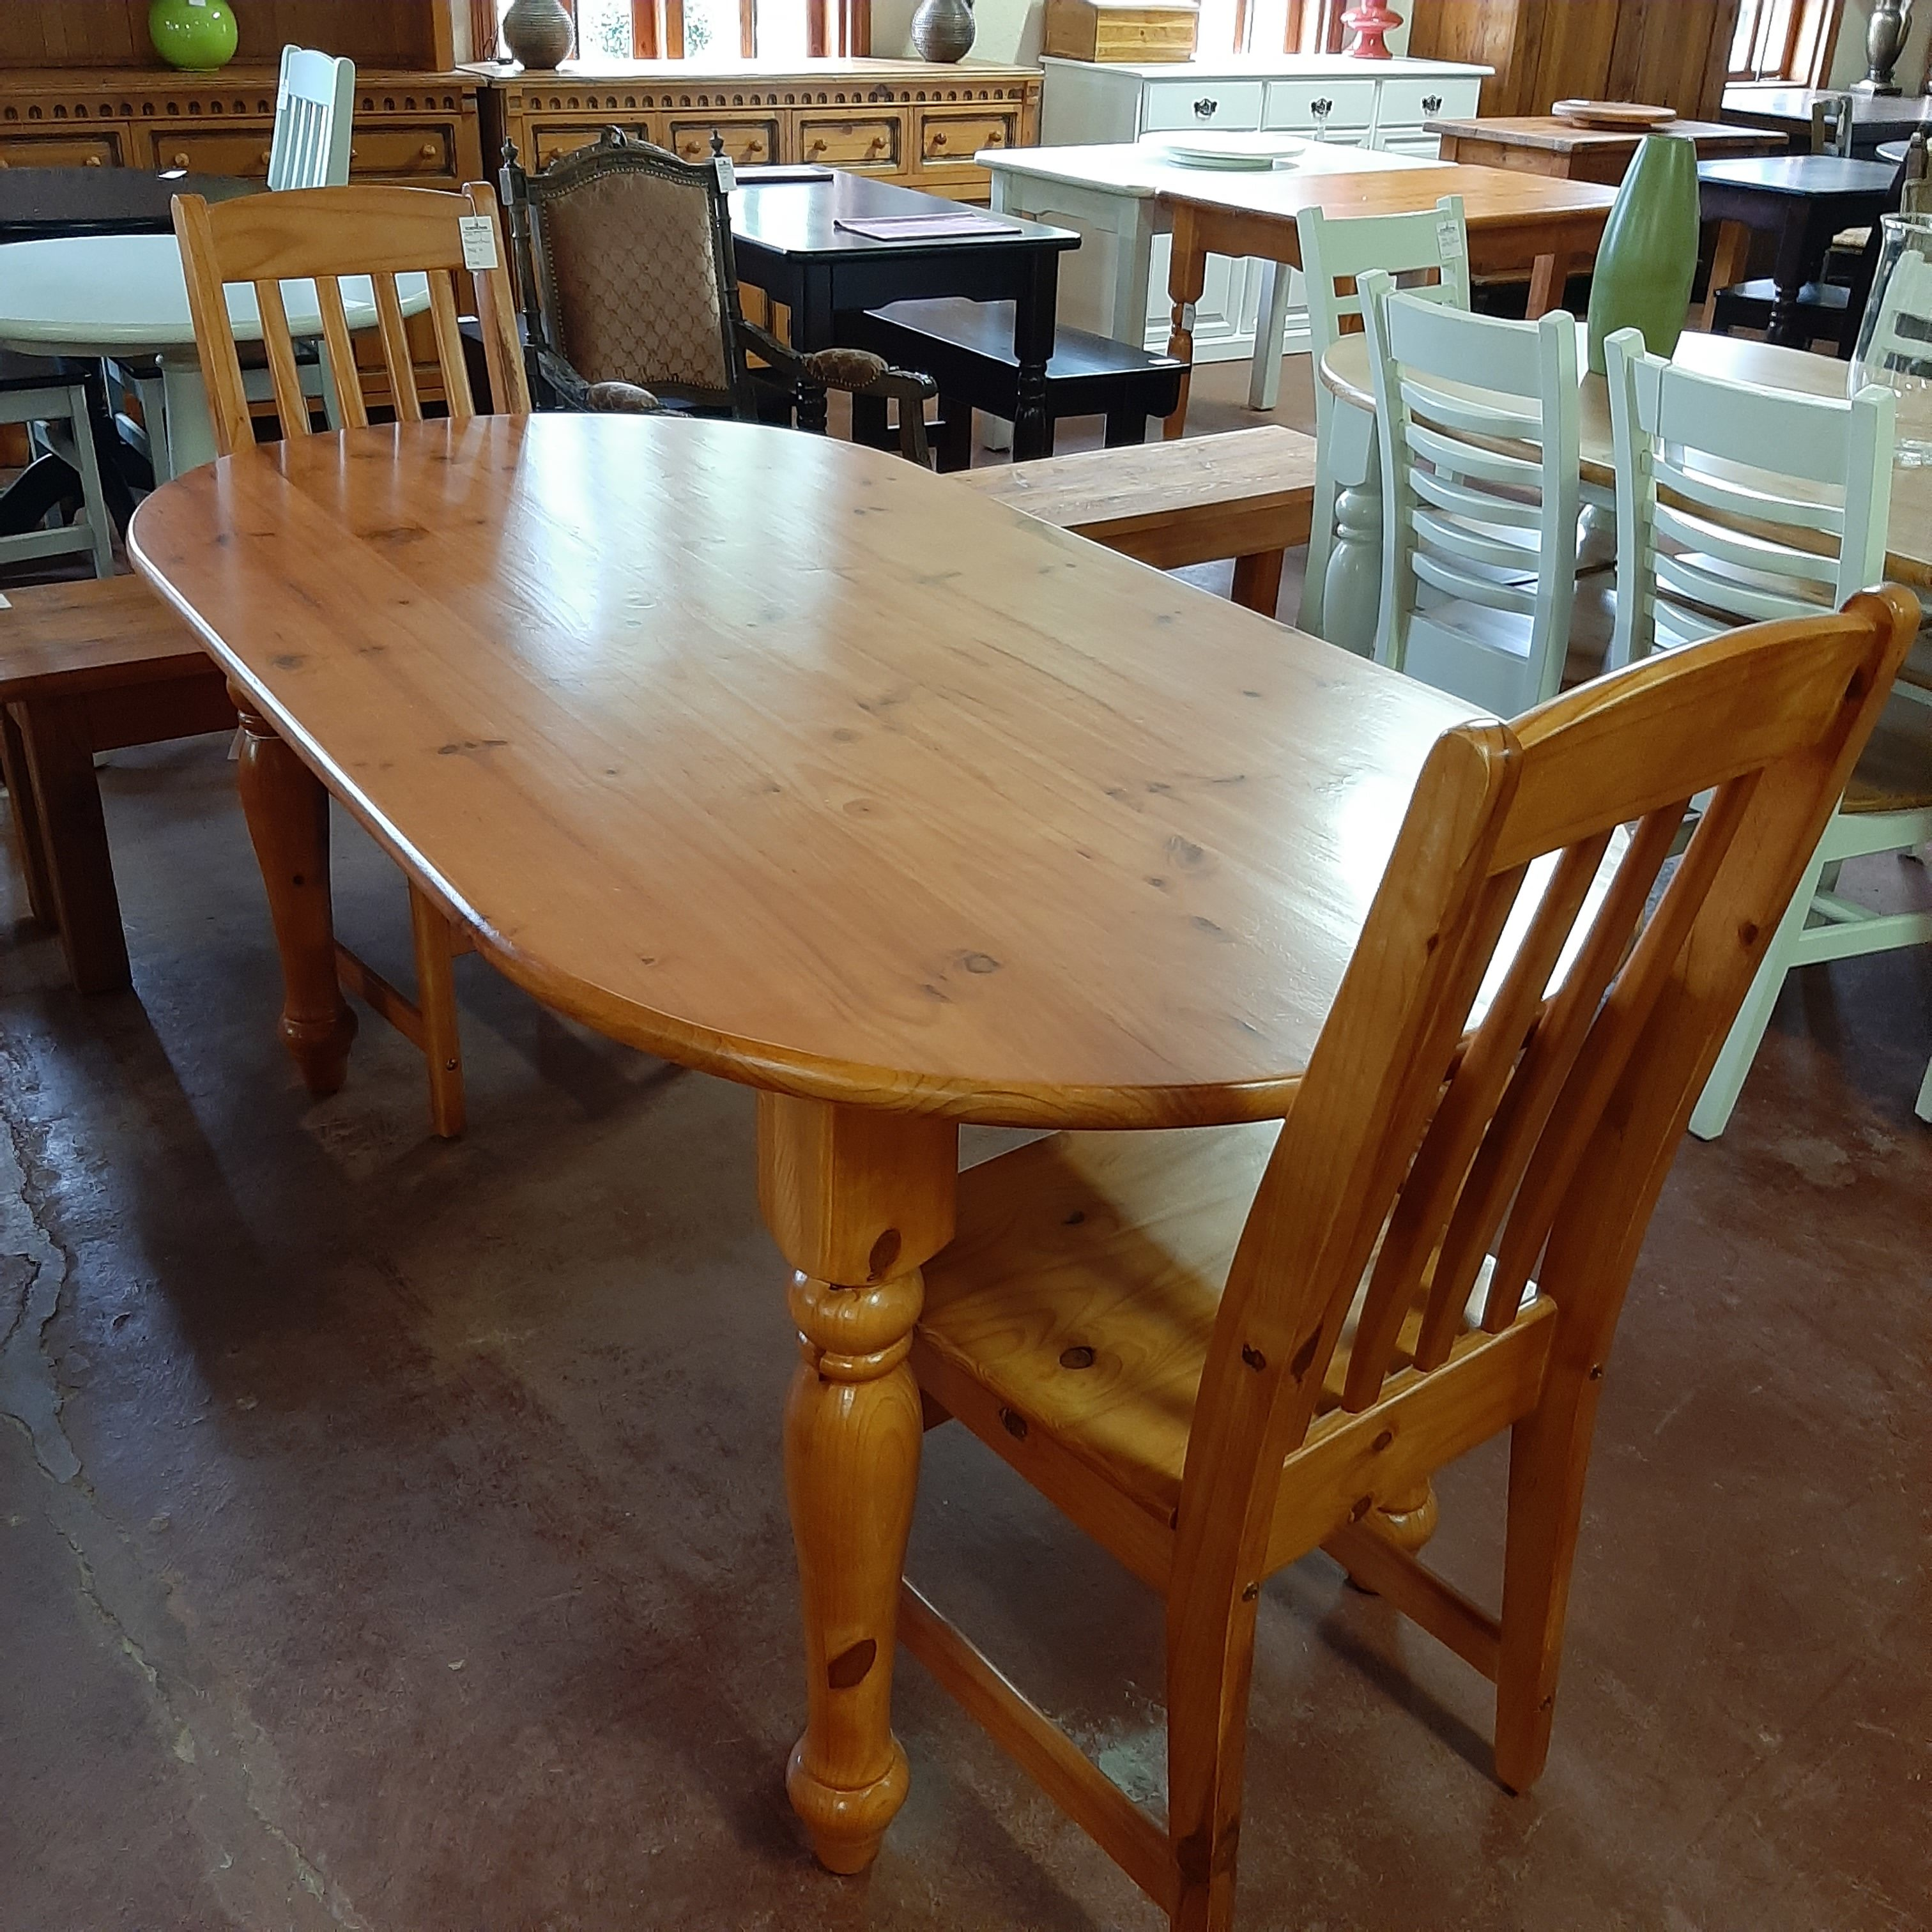 Dining Table And Chairs Elmswood, Pine Dining Room Table And Chairs